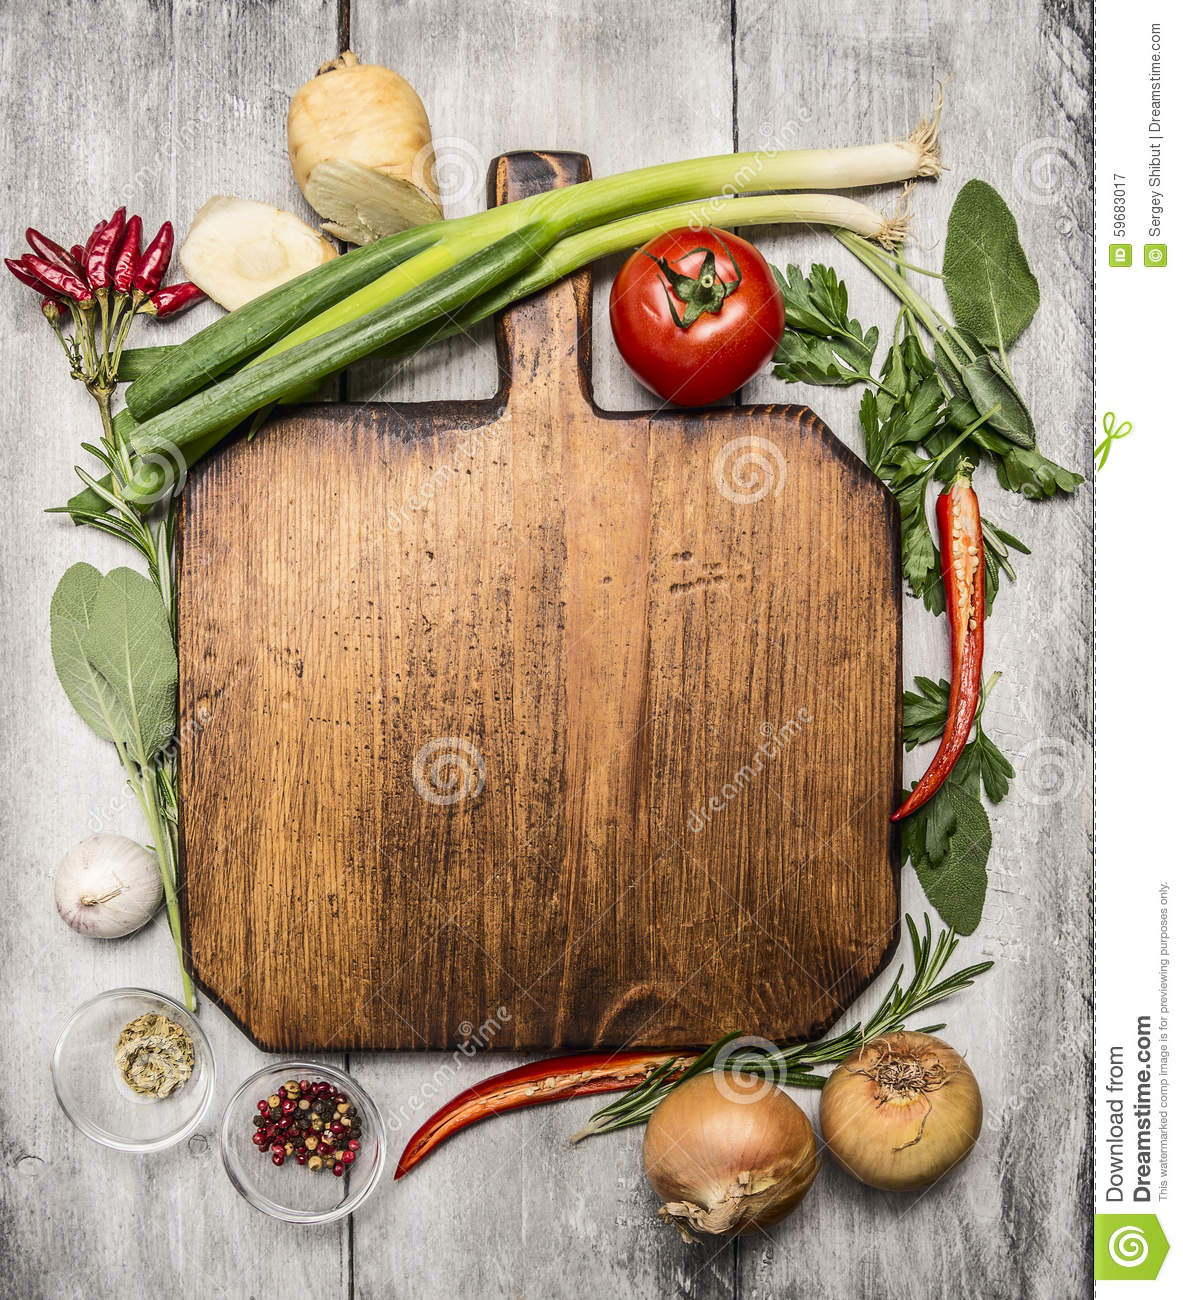 Fresh Autumn And Vegetables Seasonings And Hearbs Around A Wooden Cutting  Board On Bright, Rustic Wood Background Top View Stock Photo   Image:  59683017